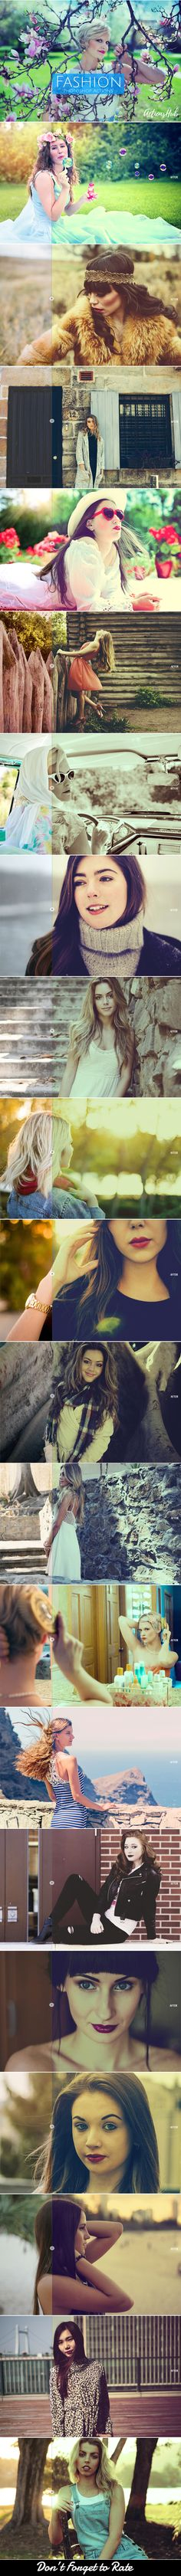 Buy 20 Fashion Photoshop Actions By Actionshub On GraphicRiver Presenting A Look Action That Can Be Used For Any